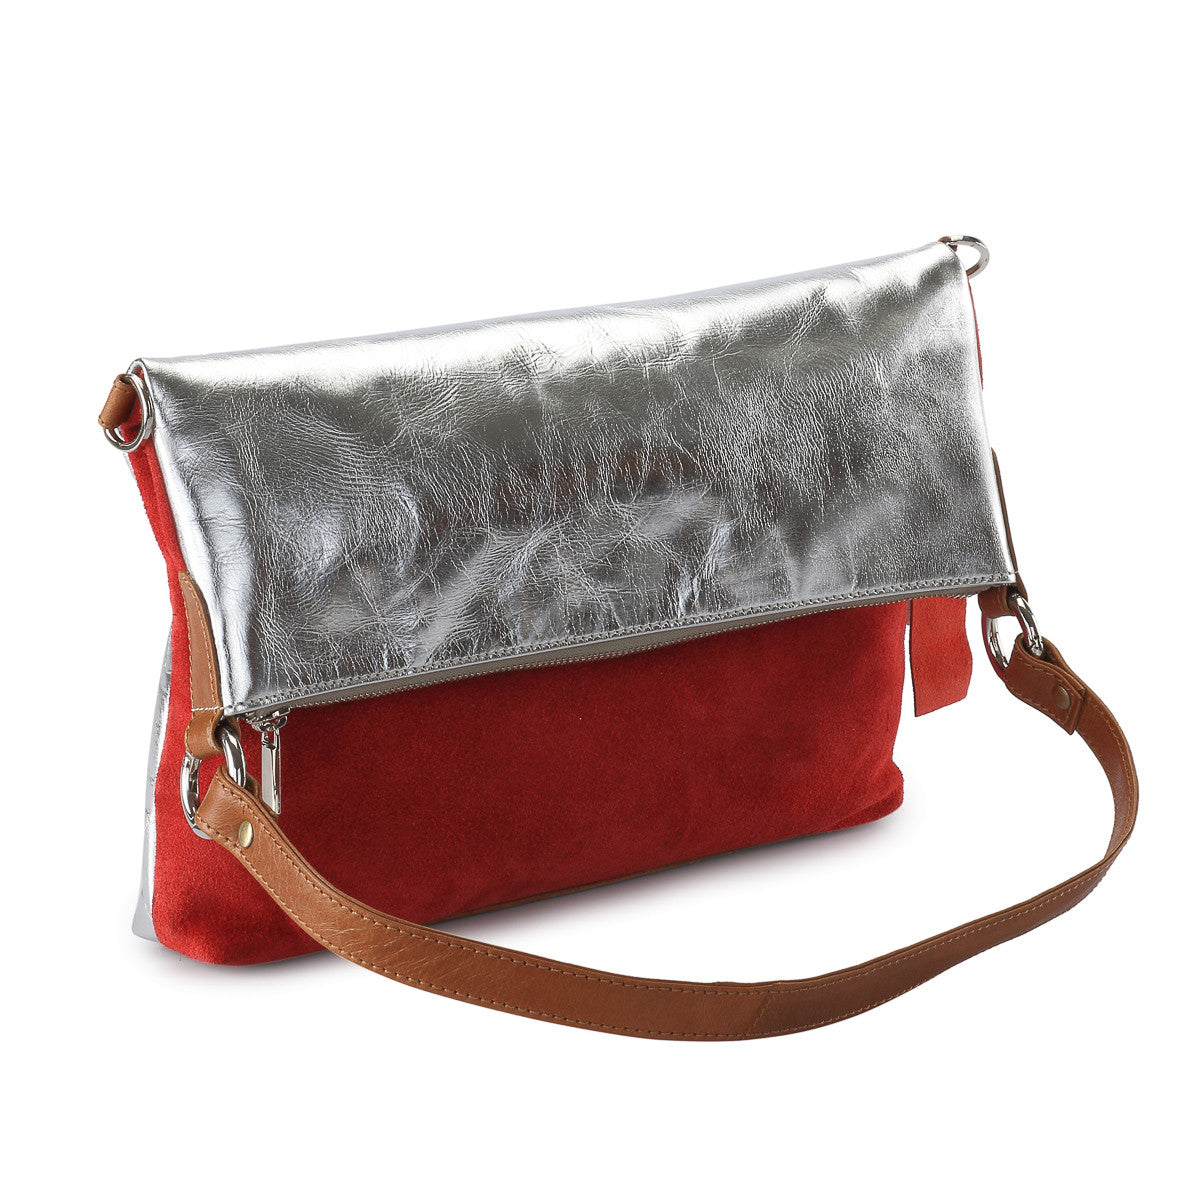 Metallic leather 4 way back pack messenger clutch bag #LB31 silver